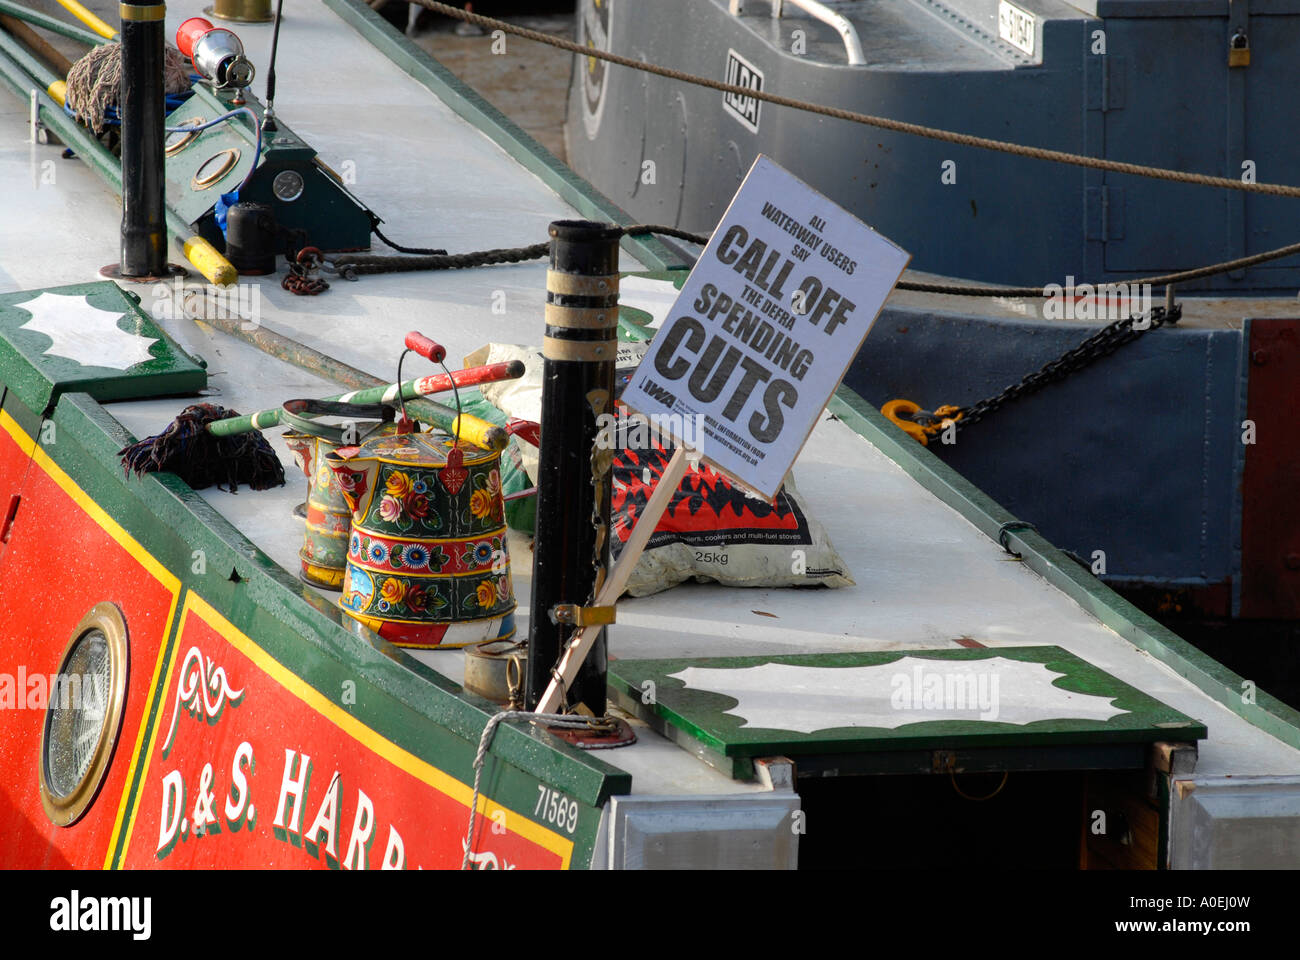 Protest against funding cuts on the waterways at Grand Union Canal Rickmansworth UK 2006 - Stock Image